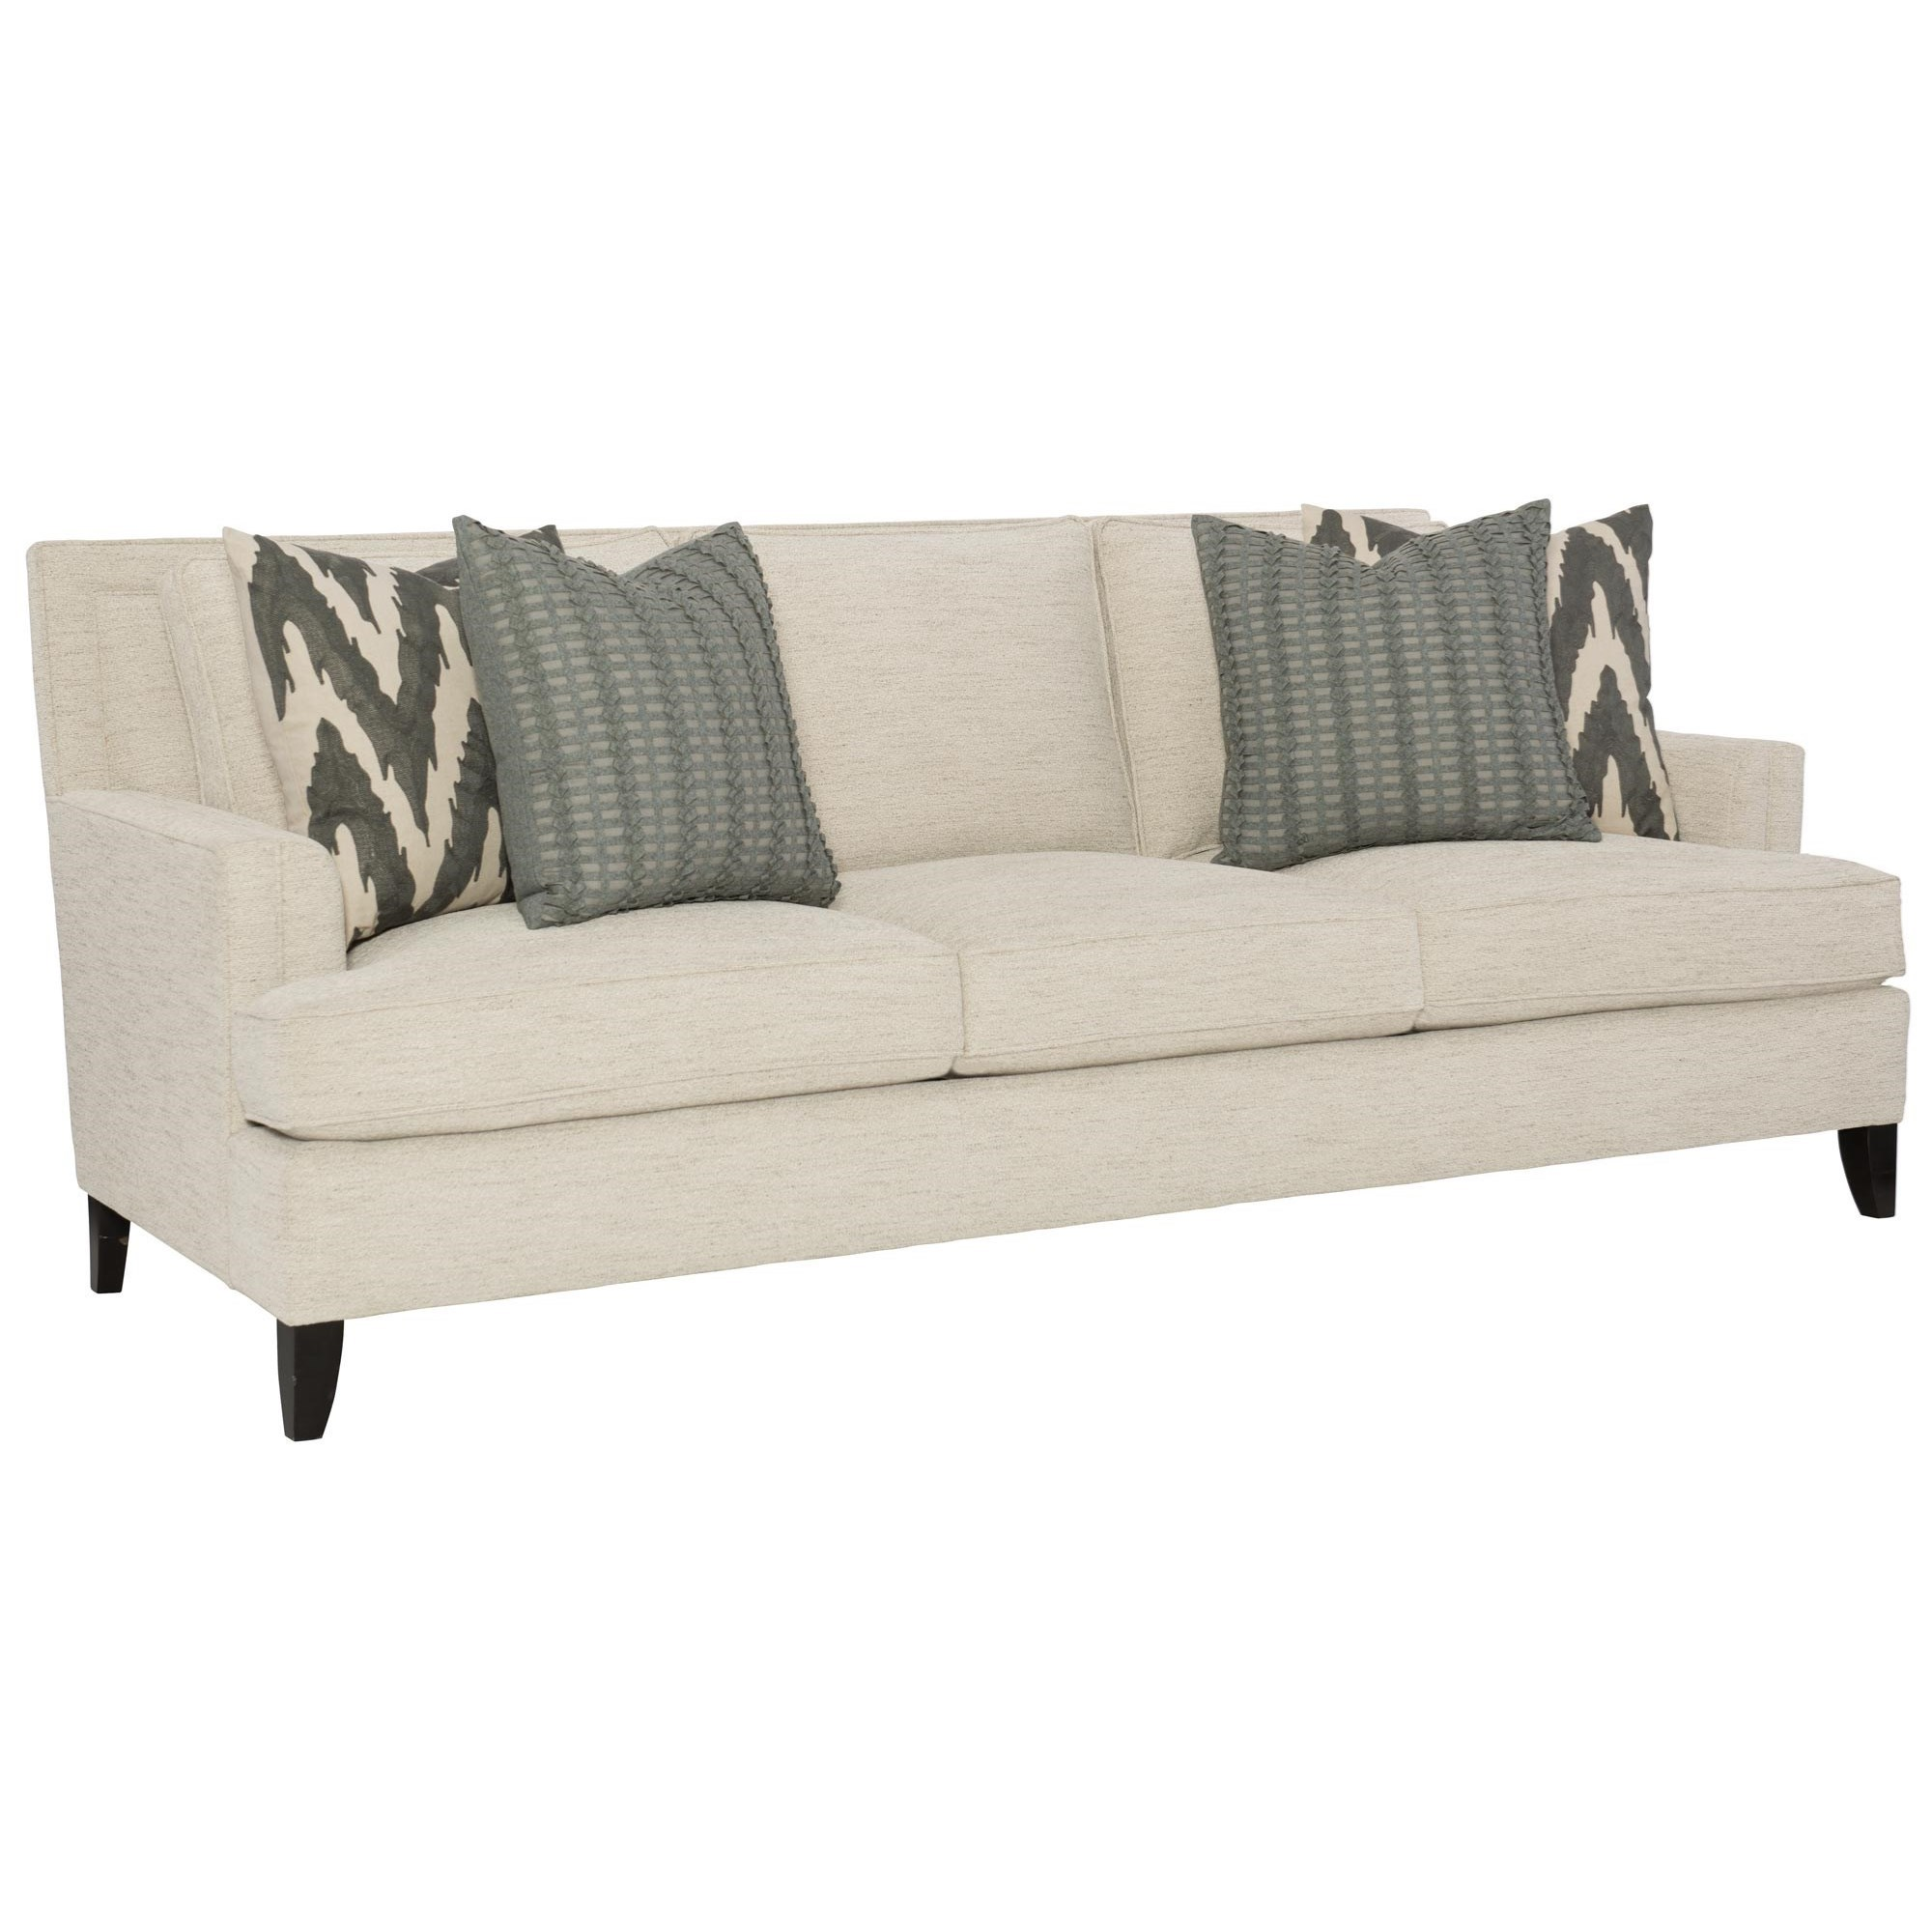 Addison Casual Styled Sofa by Bernhardt at Fisher Home Furnishings